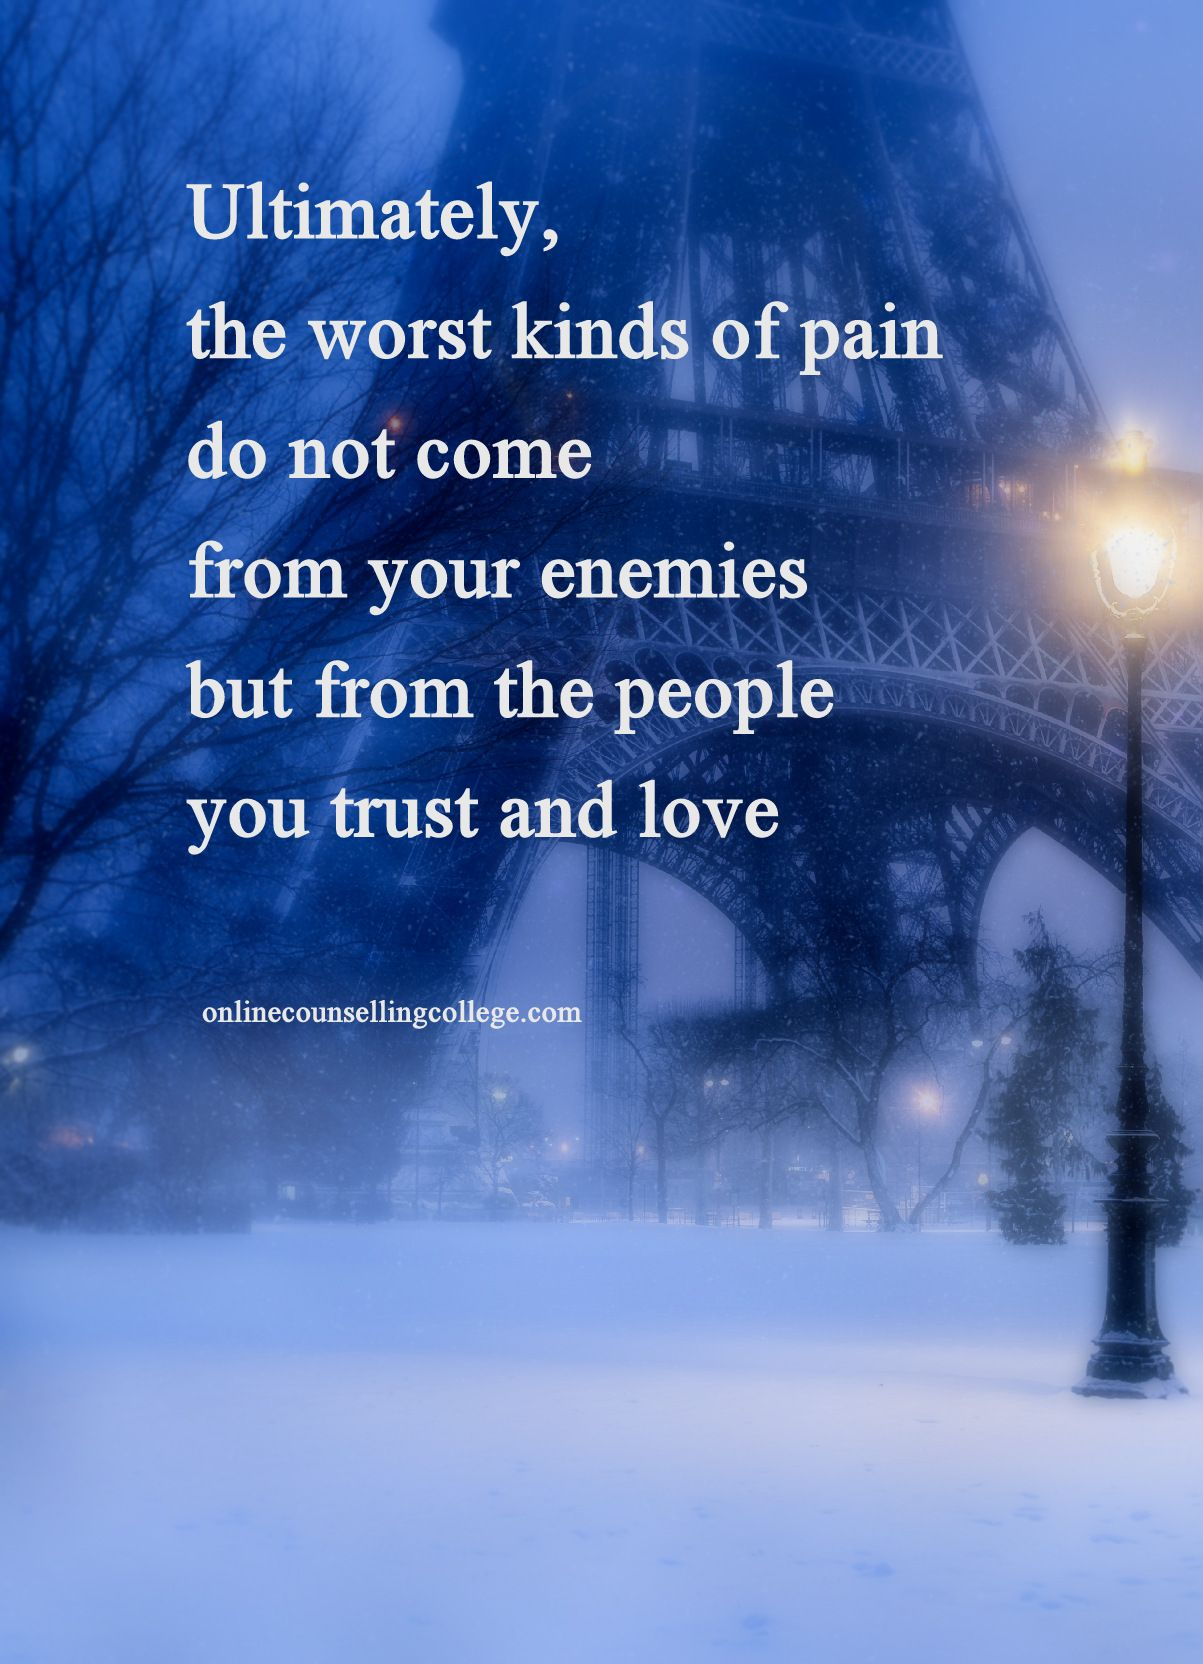 ultimately the worst kinds of pain do not come from your enemies ultimately the worst kinds of pain do not come from your enemies but from